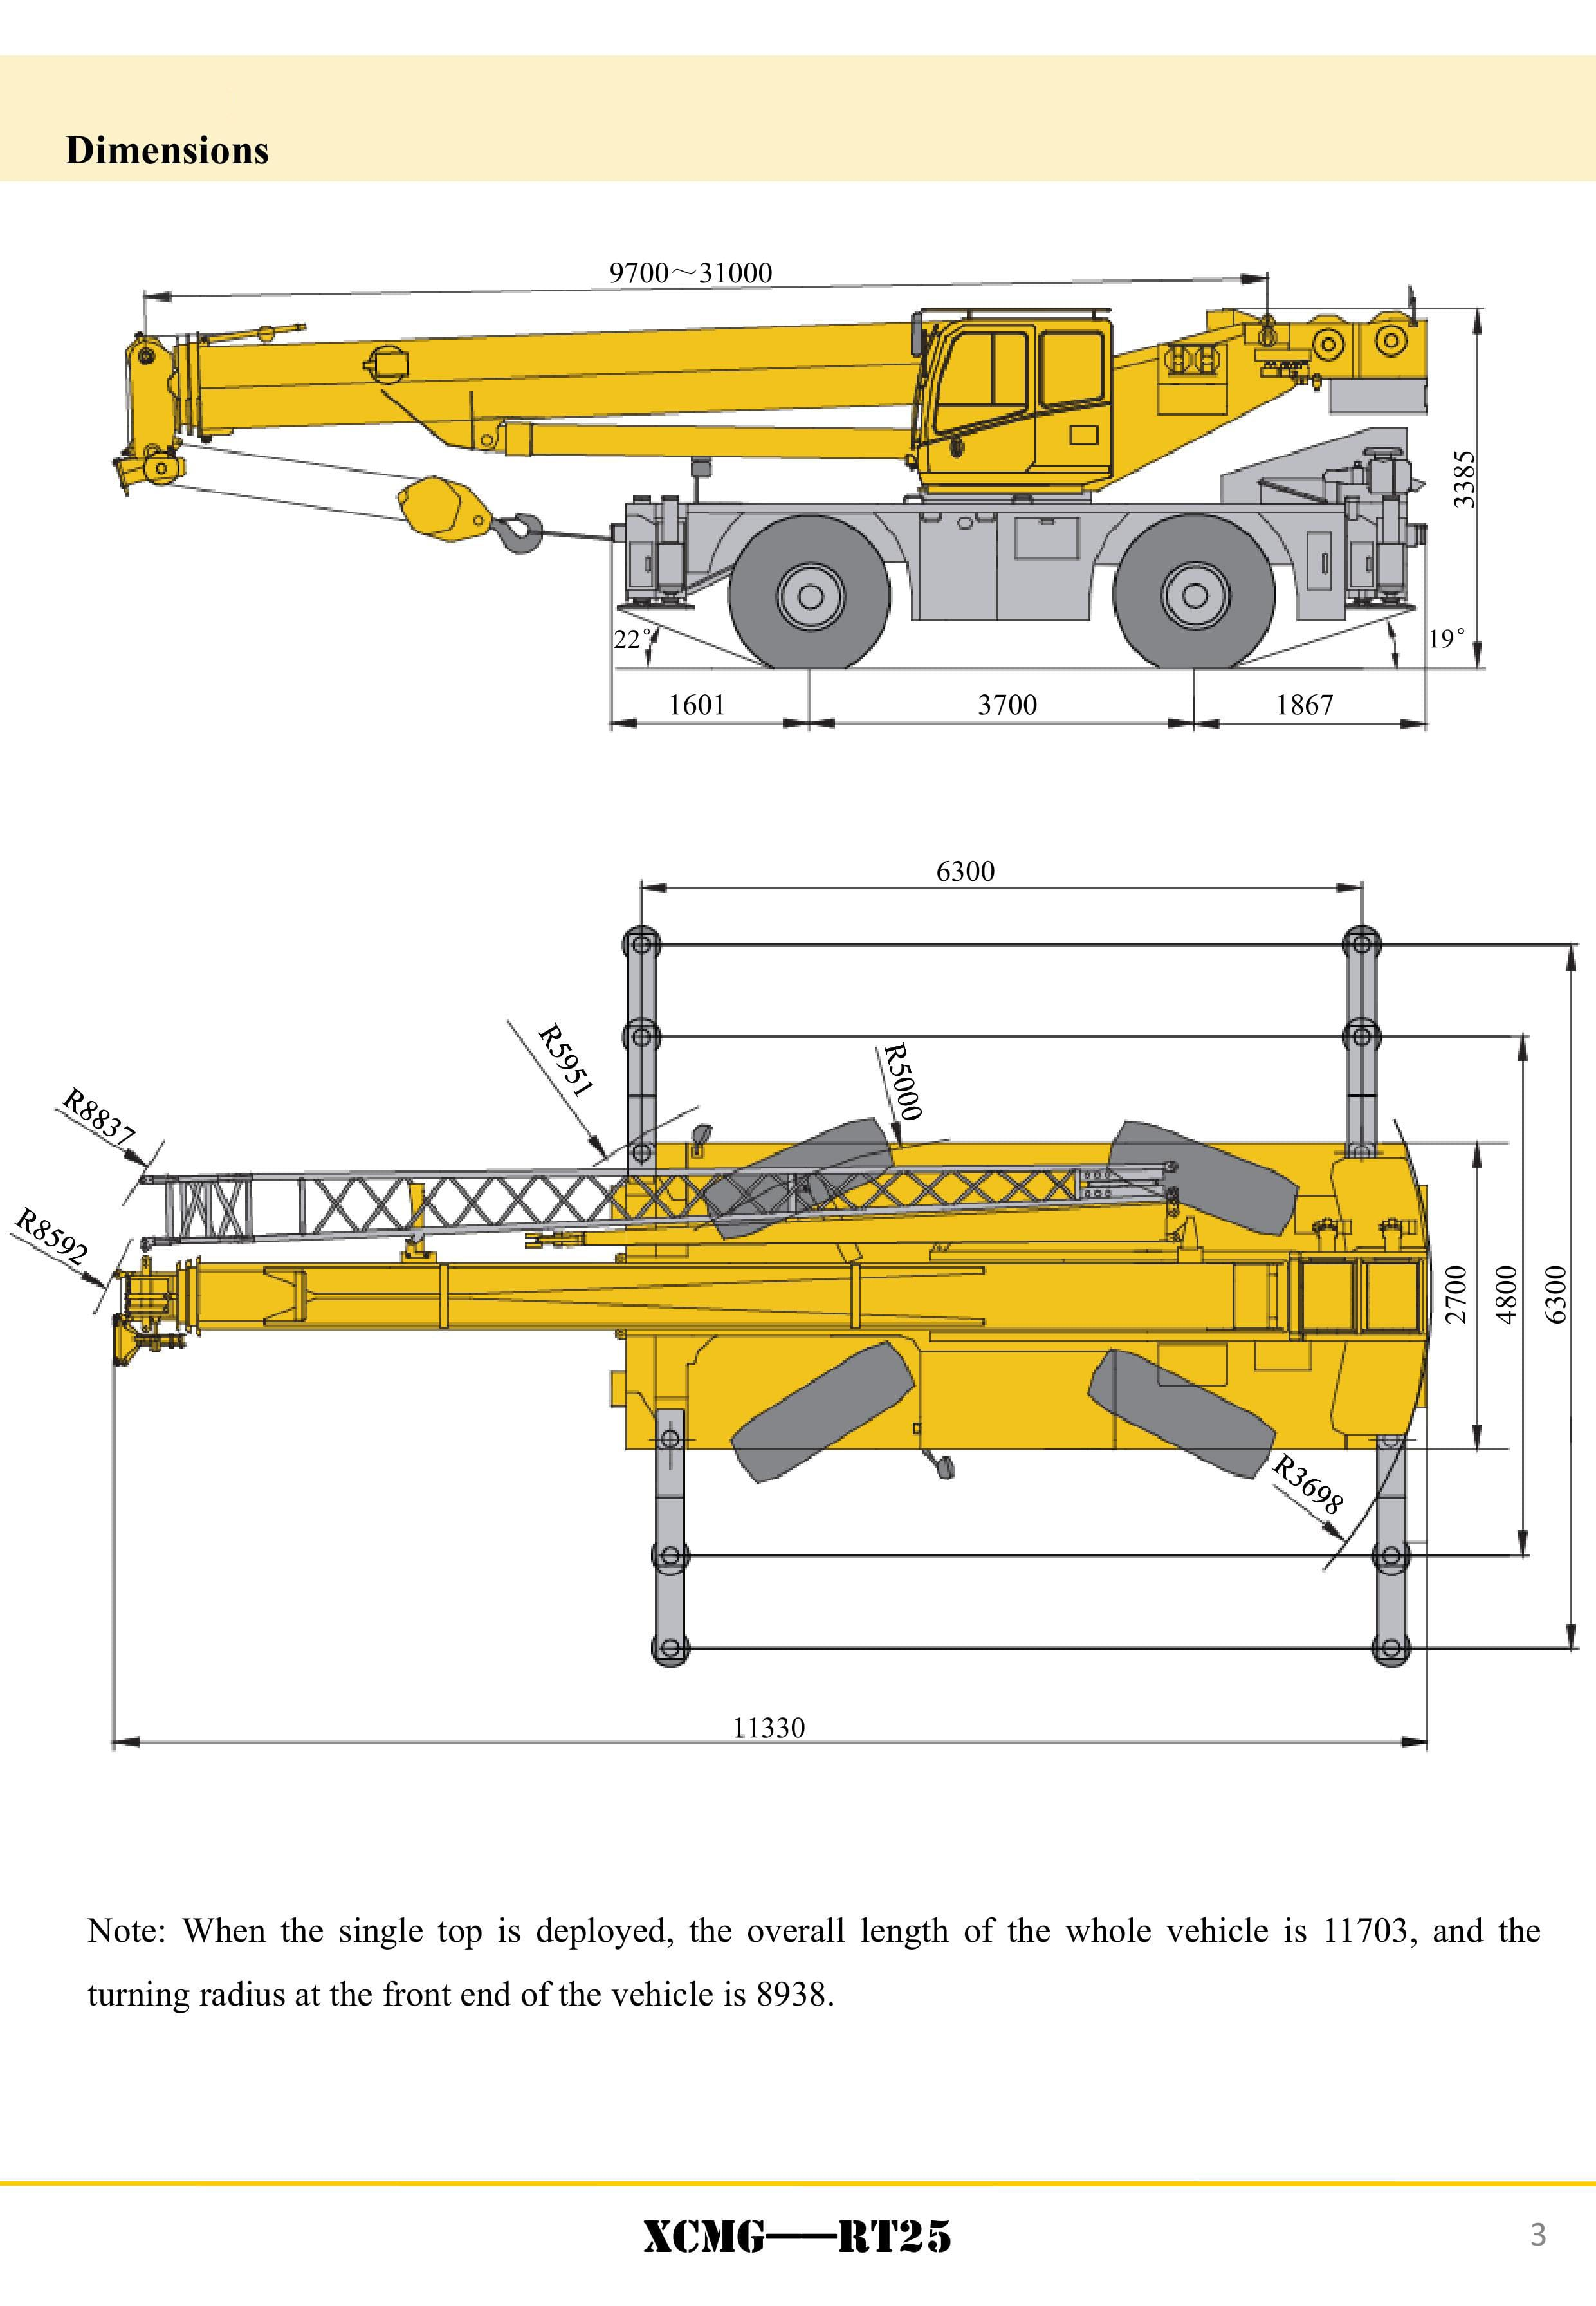 XCMG Official RT25 Rough Terrain Crane for sale